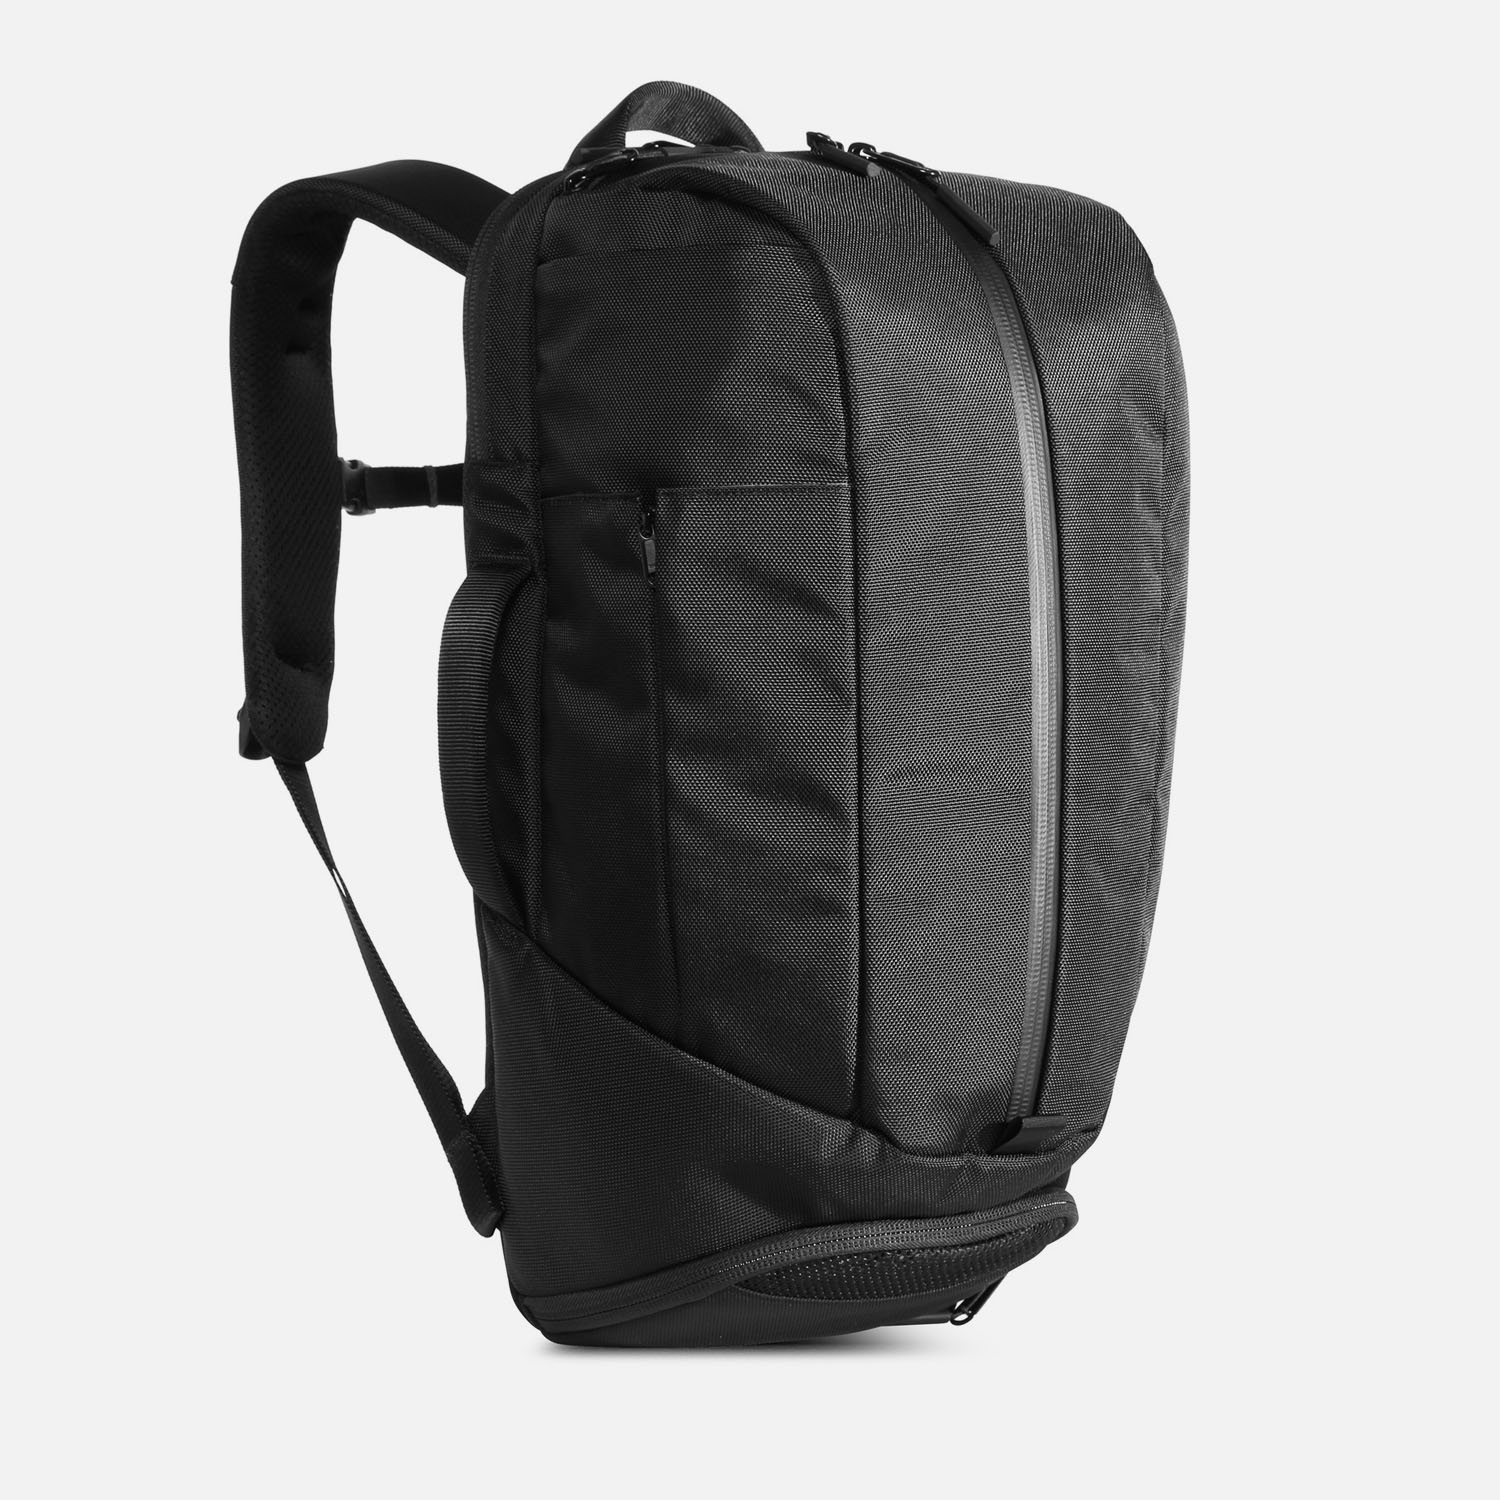 0d205e46715 Duffel Pack 2 - Black — Aer   Modern gym bags, travel bags and accessories  designed for the city ...